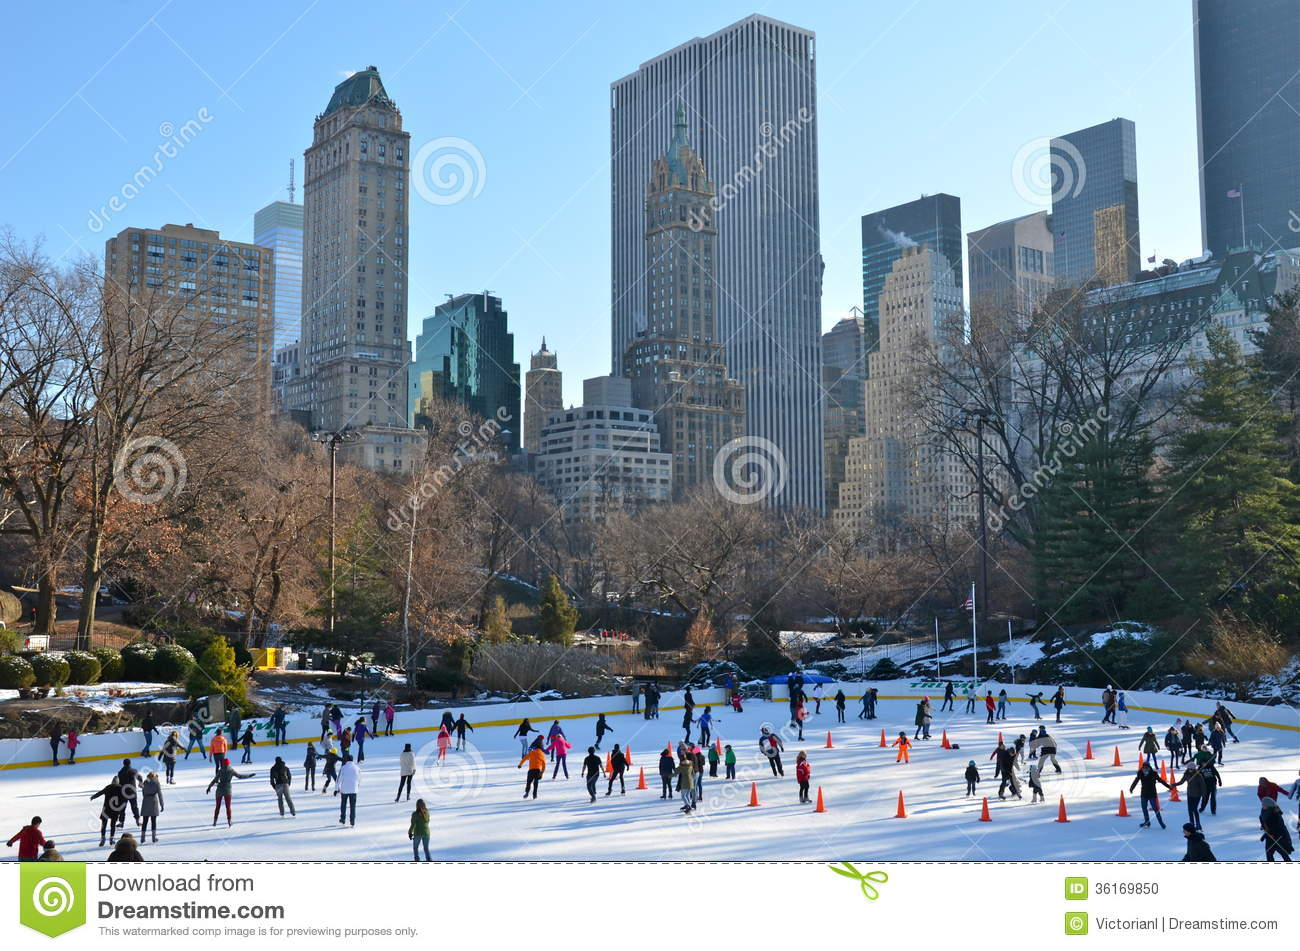 weihnachten im central park new york stockfoto bild 36169850. Black Bedroom Furniture Sets. Home Design Ideas